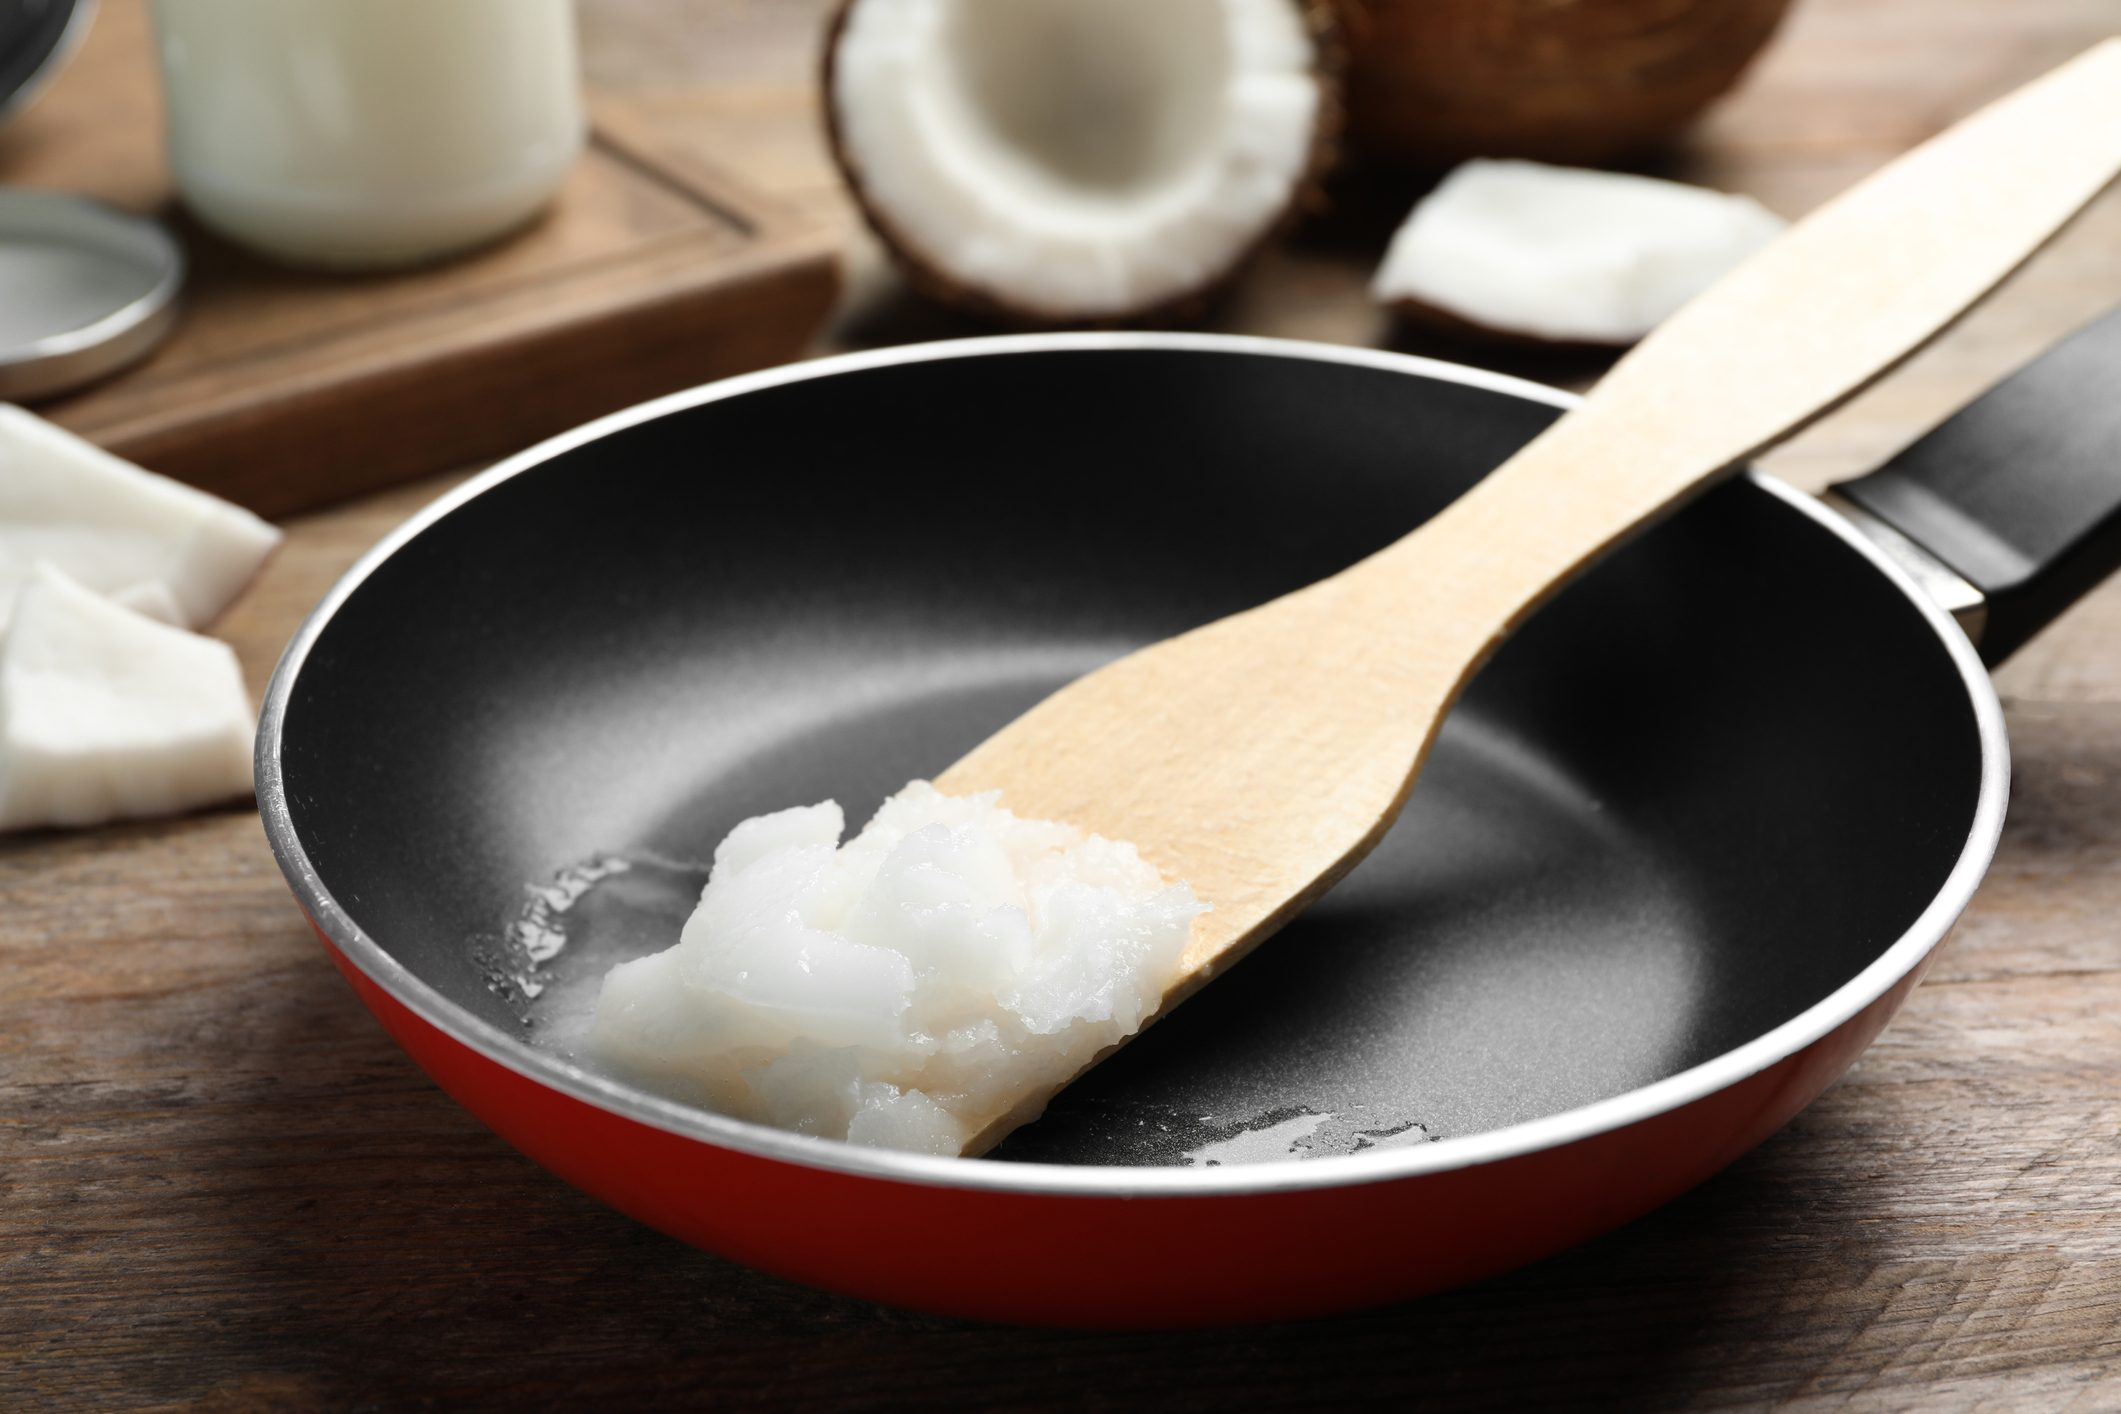 healthiest cooking oils | Frying pan with coconut oil and wooden spatula